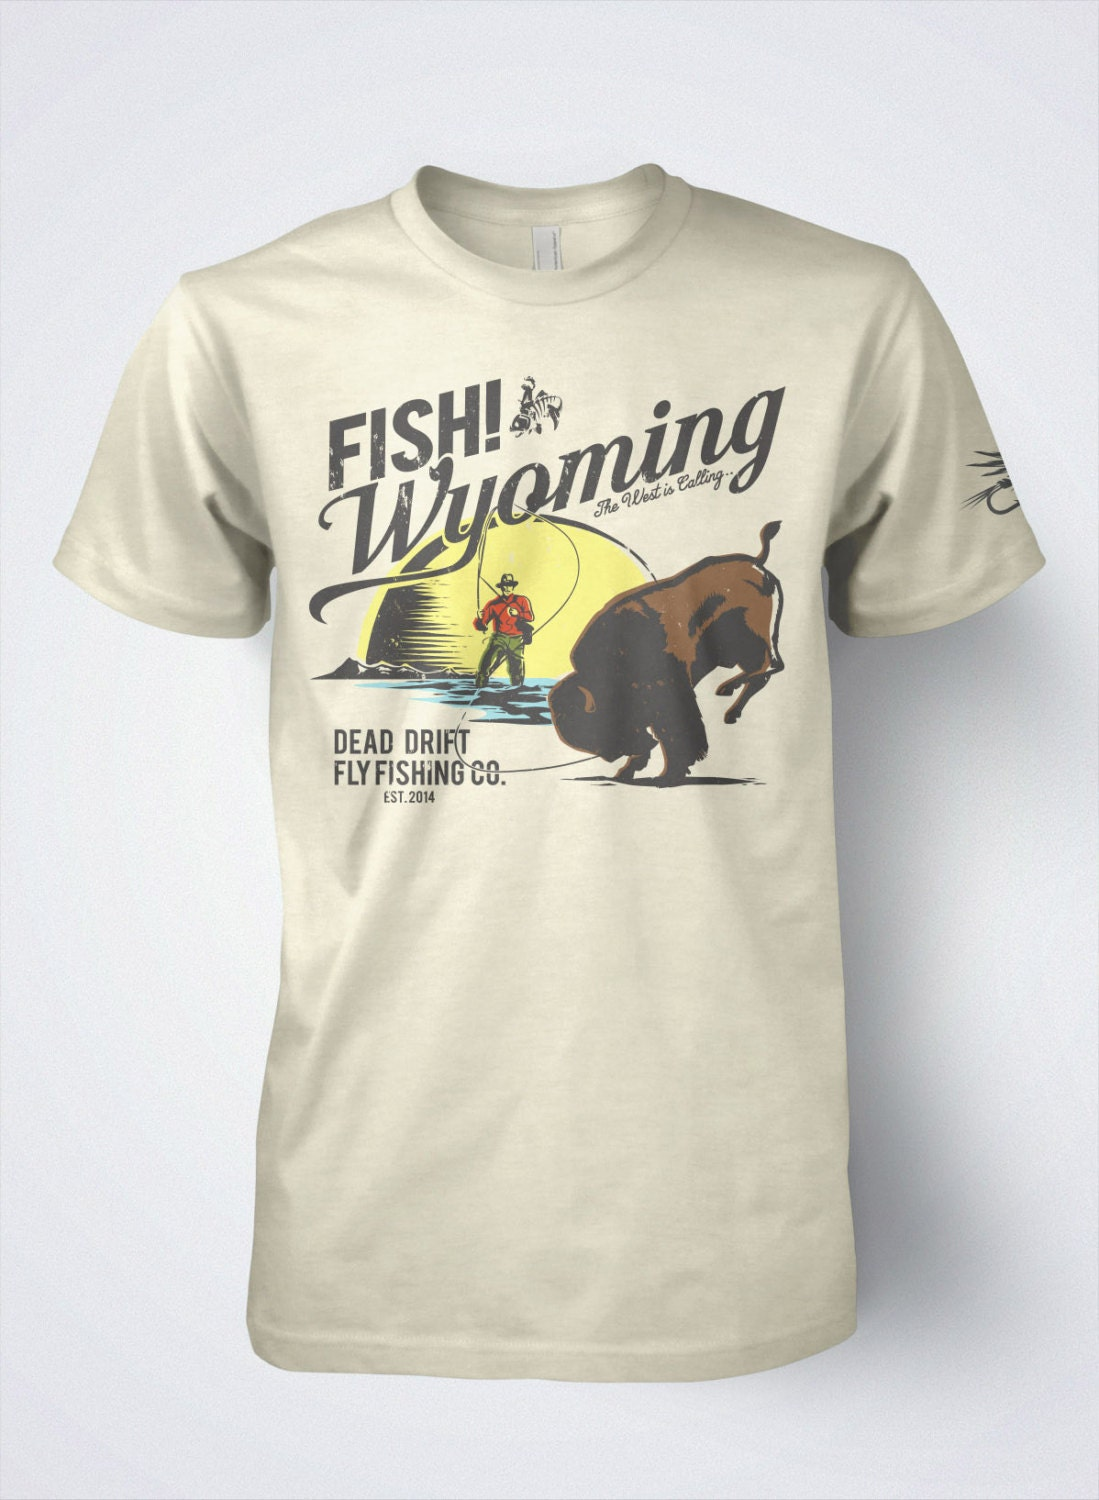 Best selling fishing t shirts for men the retro by deaddrift for Best fishing shorts